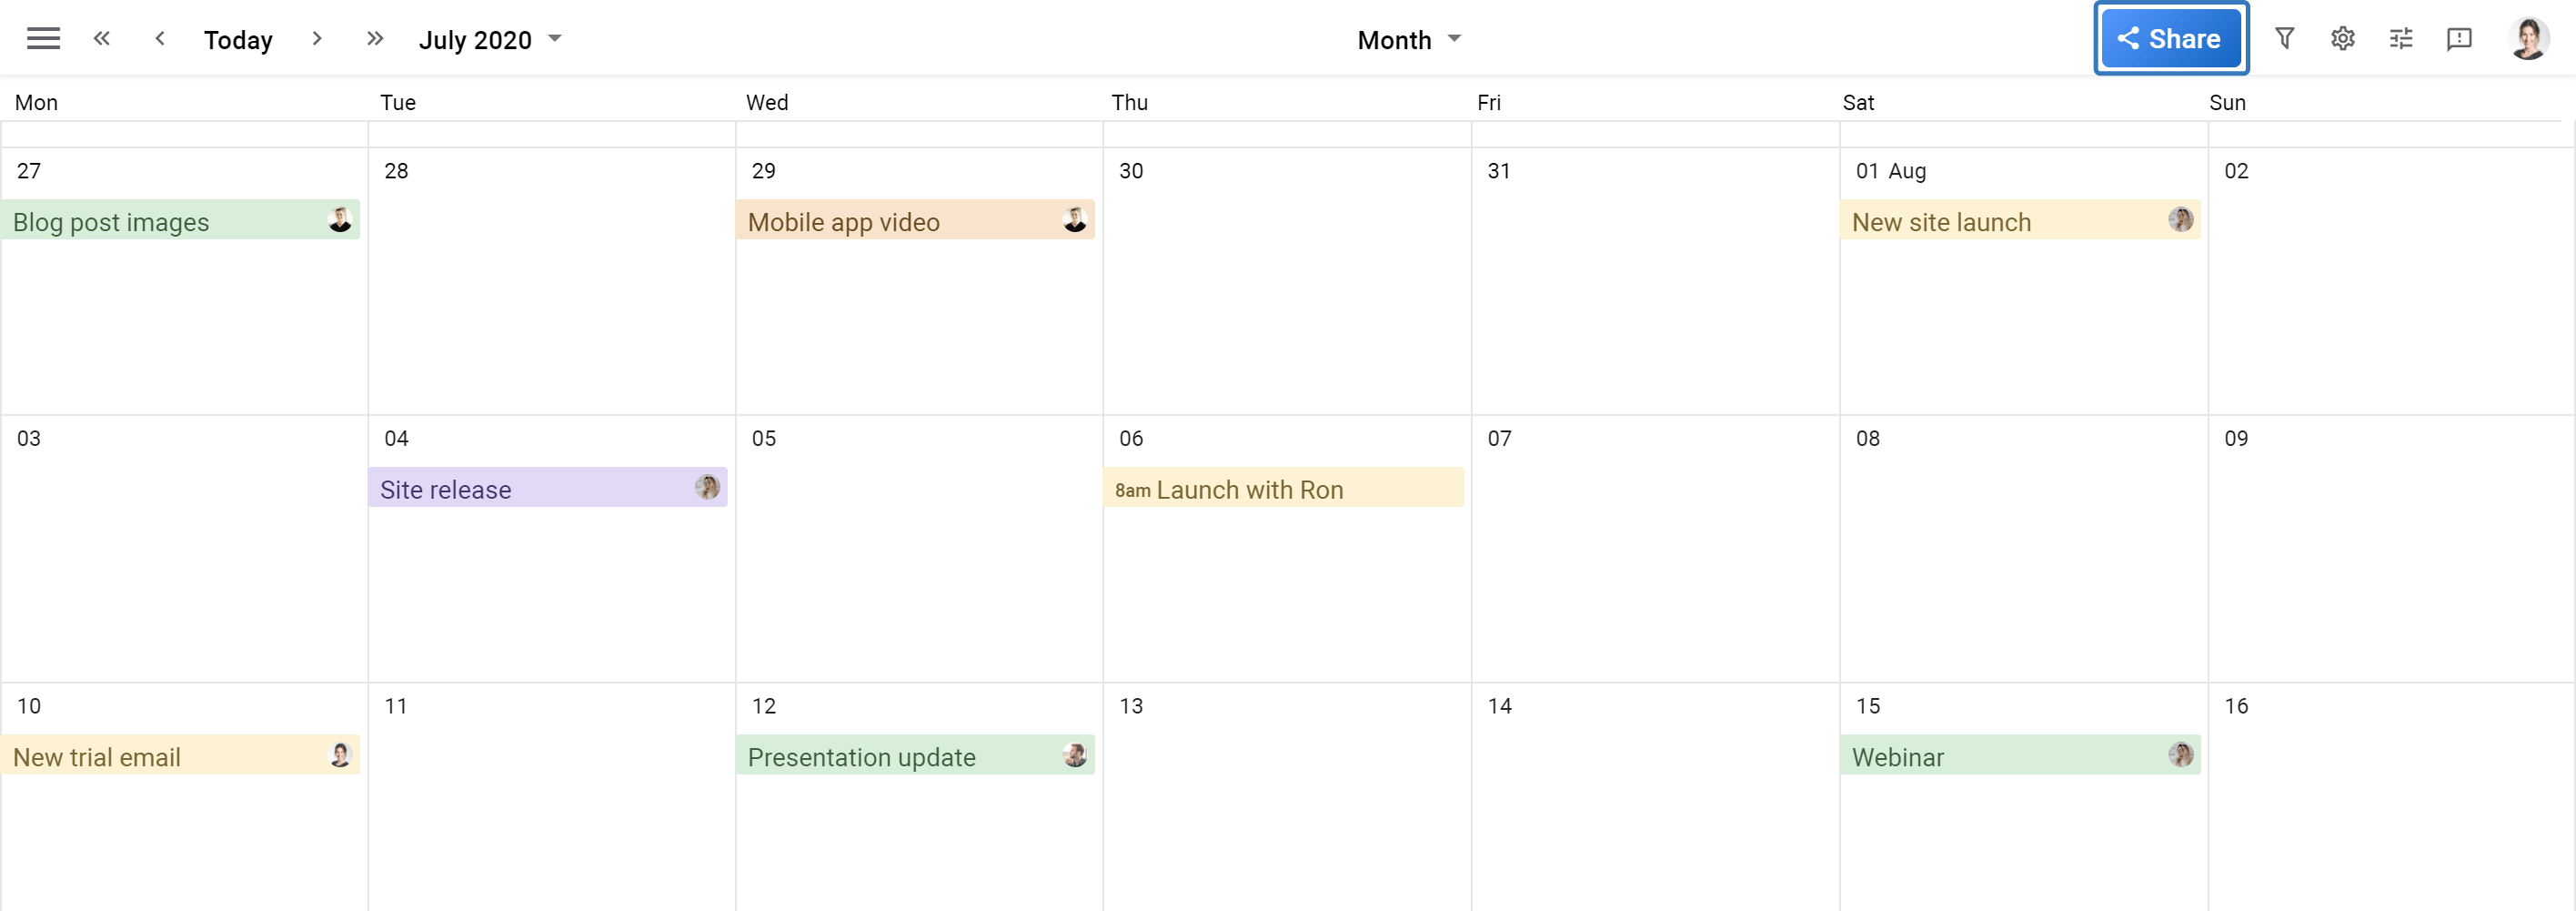 Planyway Calendar view sharing